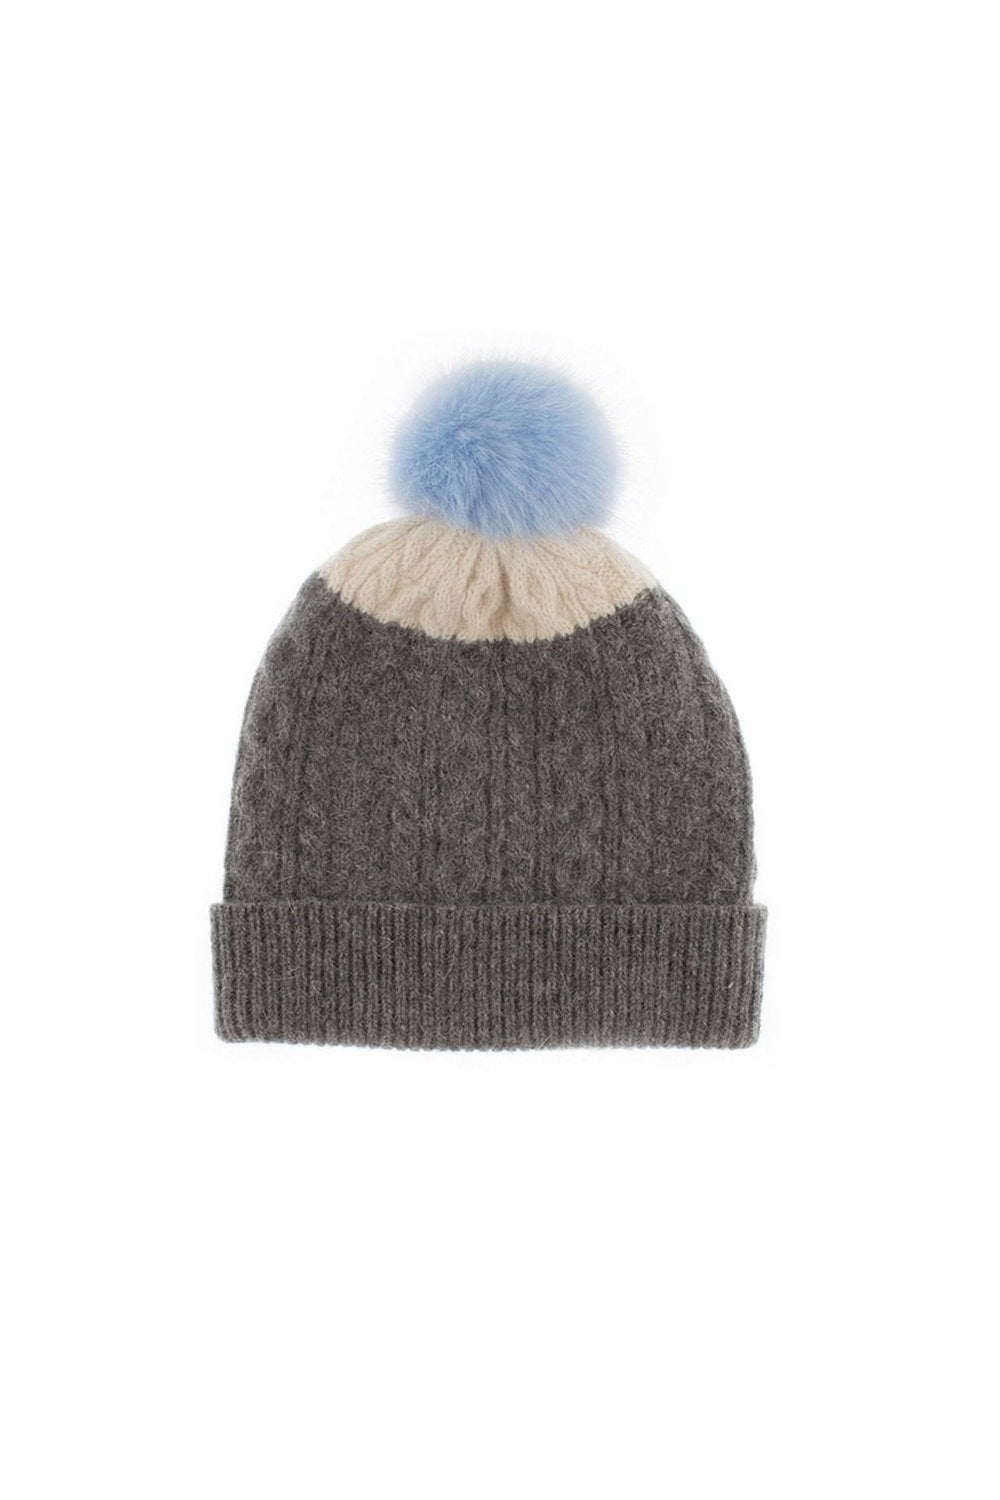 Dents Womens Cable Knit Hat with Pom Pom - Womenswear from Potters ... c694133db19